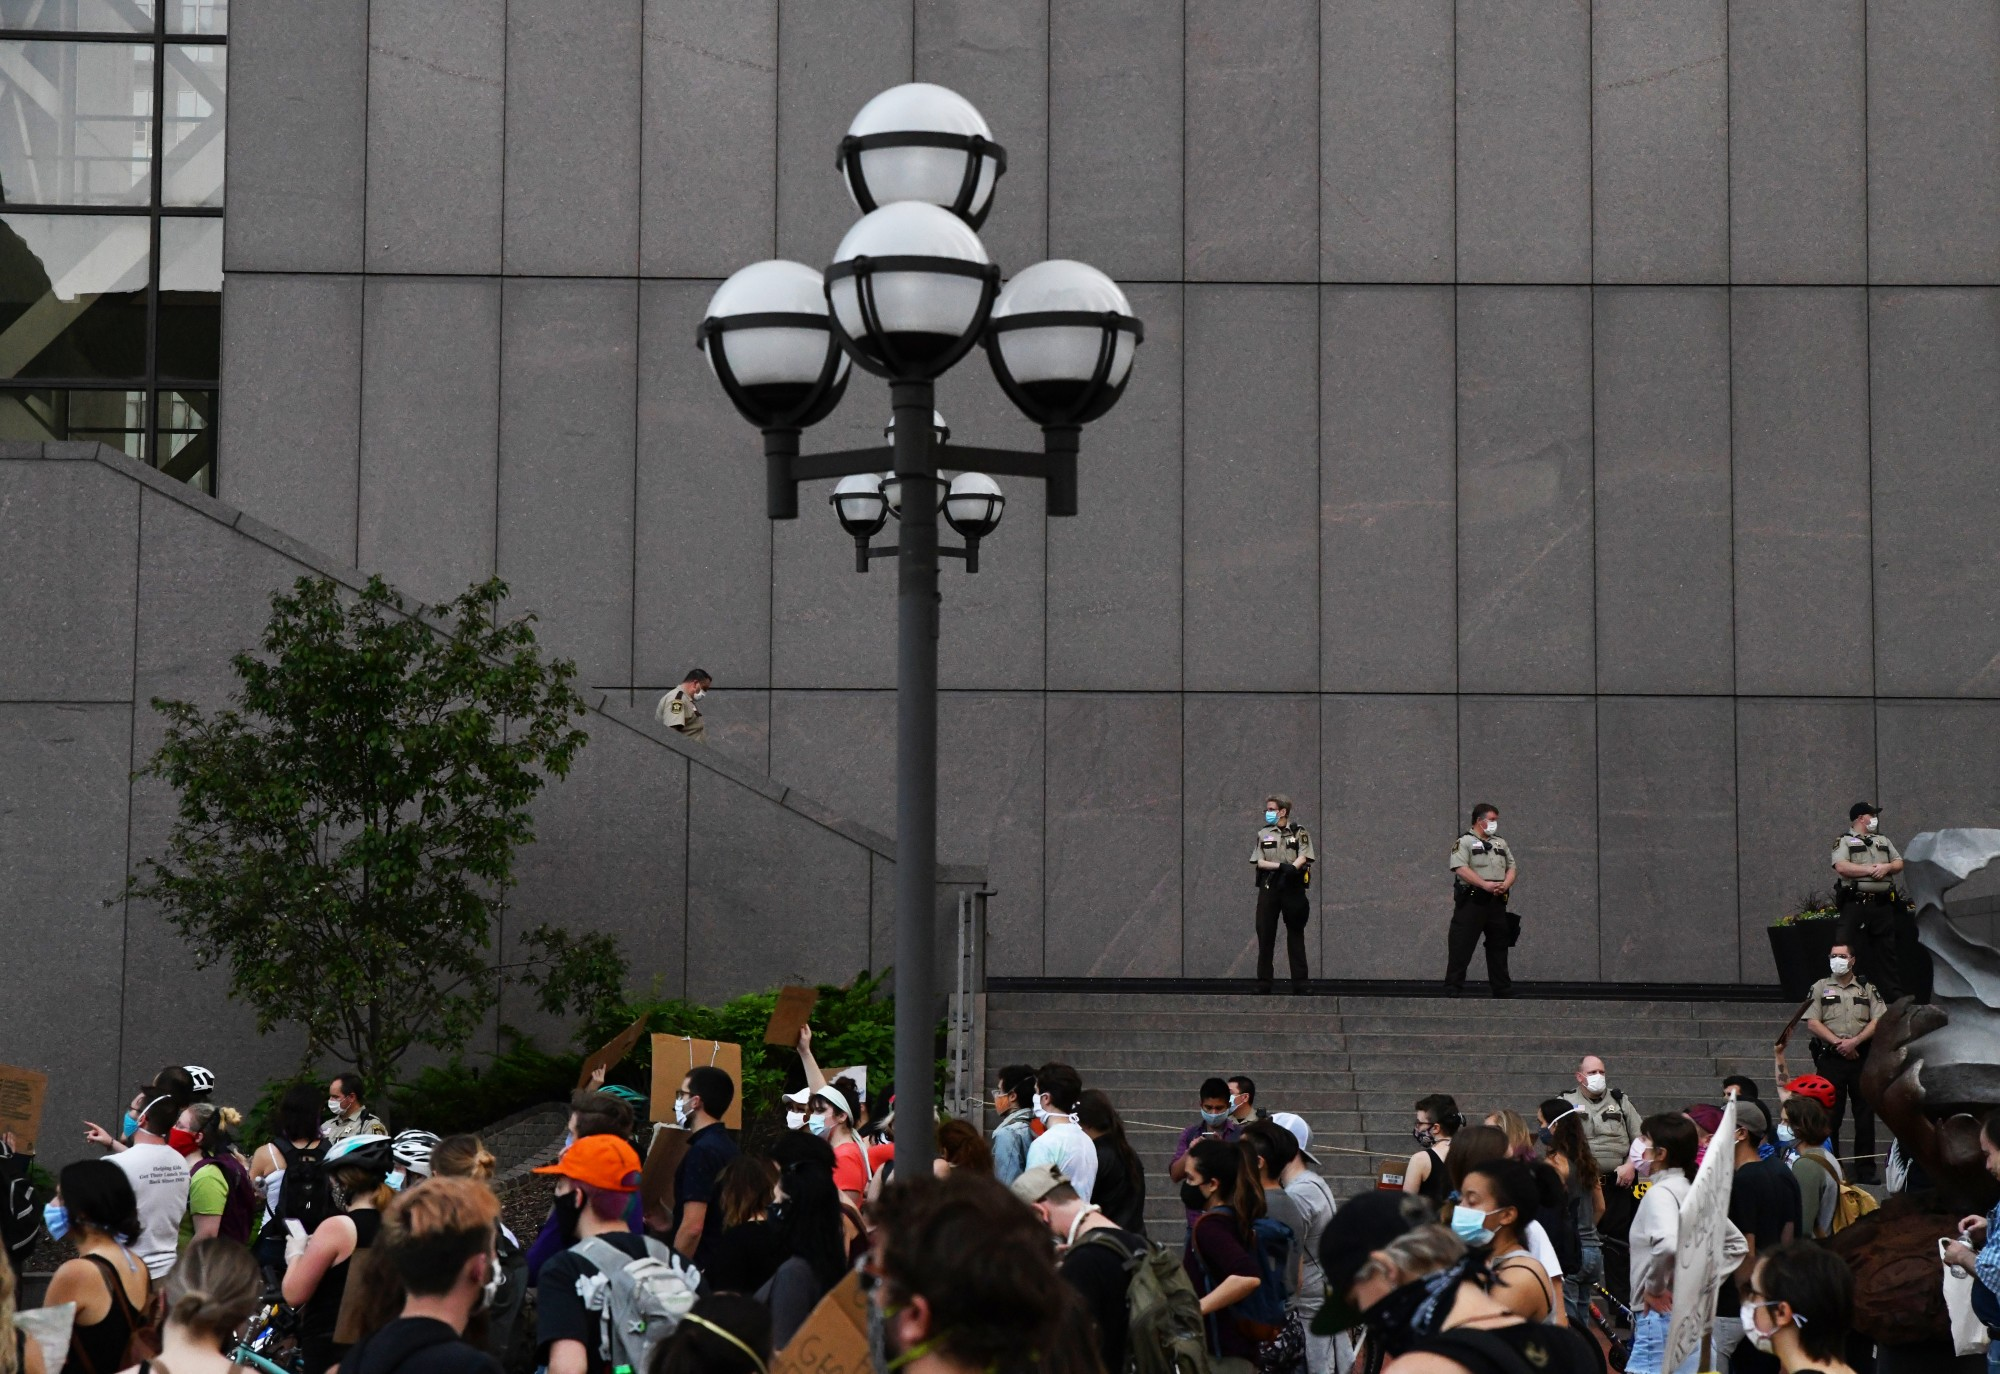 Hennepin County sheriffs overlook the crowd of protesters from the Hennepin County Government Center in Minneapolis on Thursday, May 28.